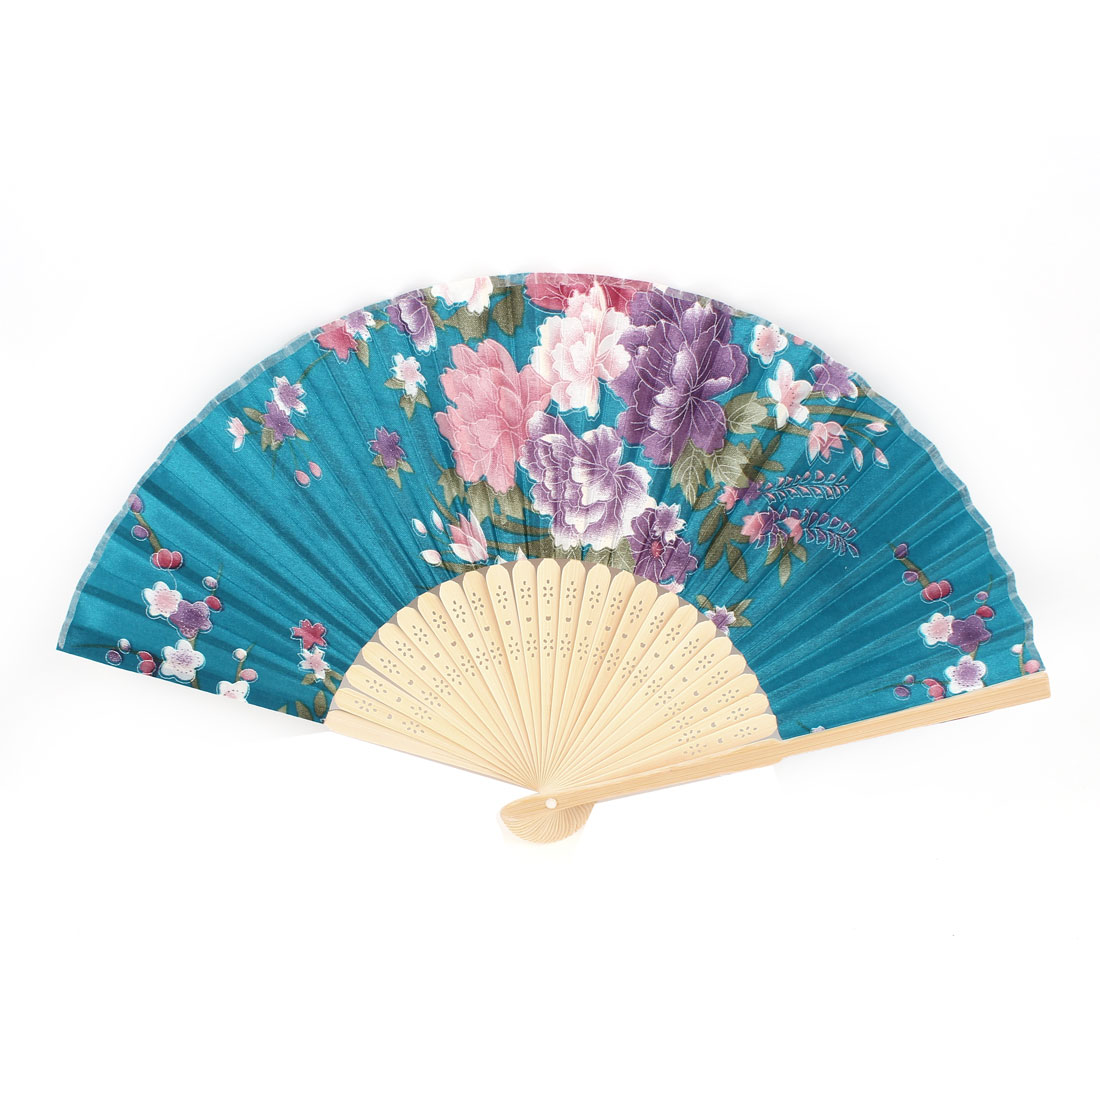 Purple Peony Pattern Bamboo Hollow Out Ribs Folding Hand Fan Teal Blue